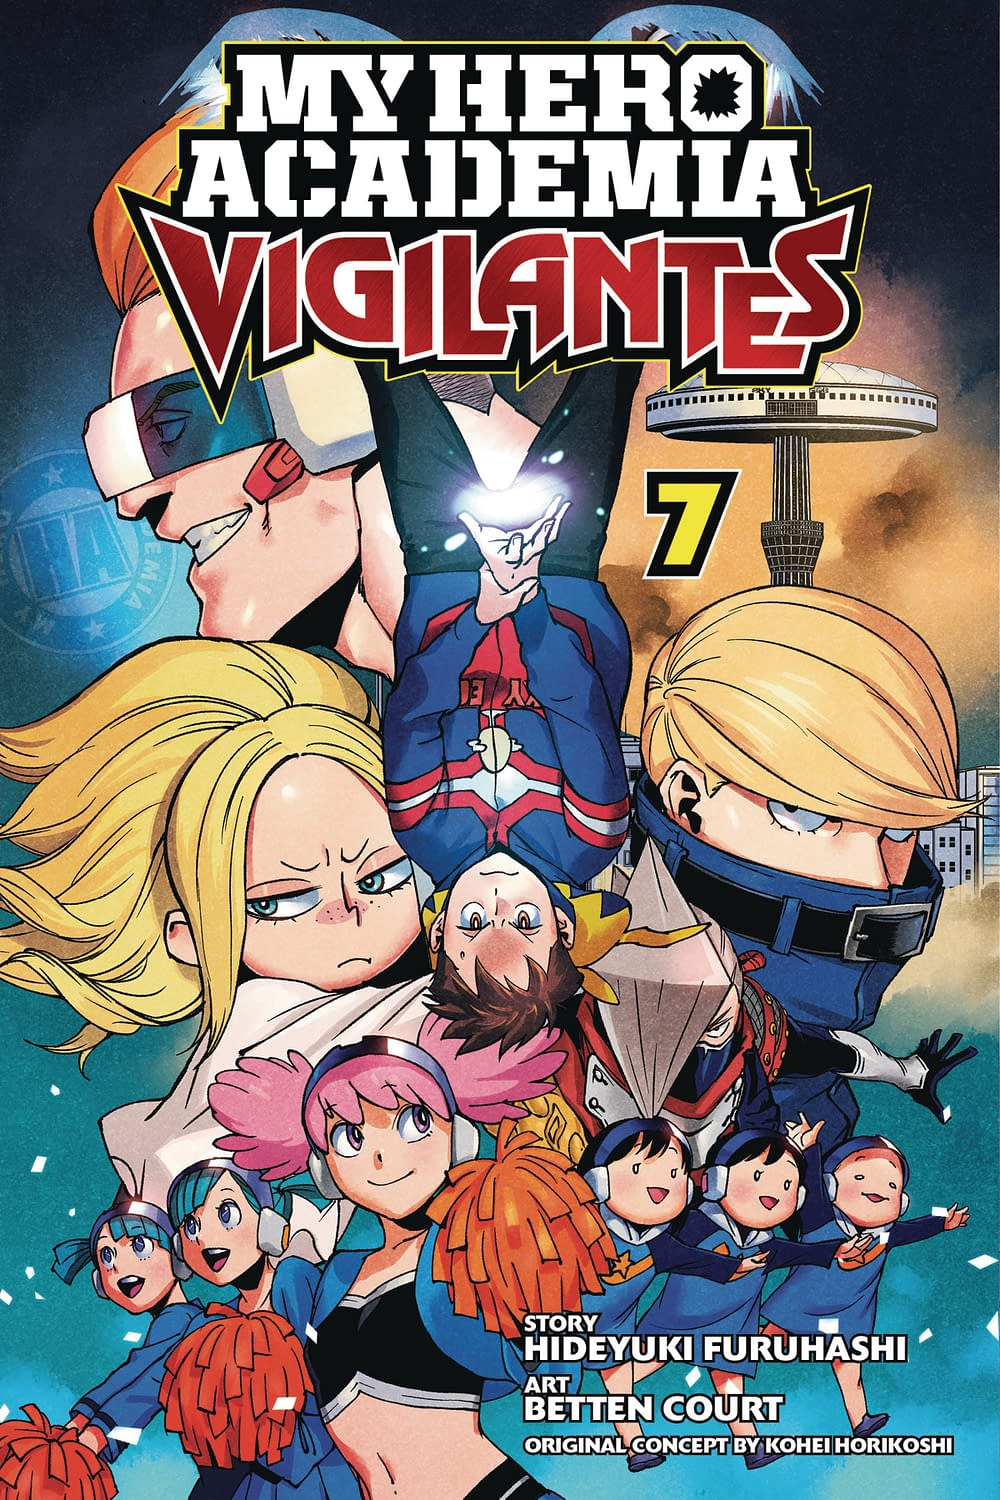 MY HERO ACADEMIA VIGILANTES GN VOL 07